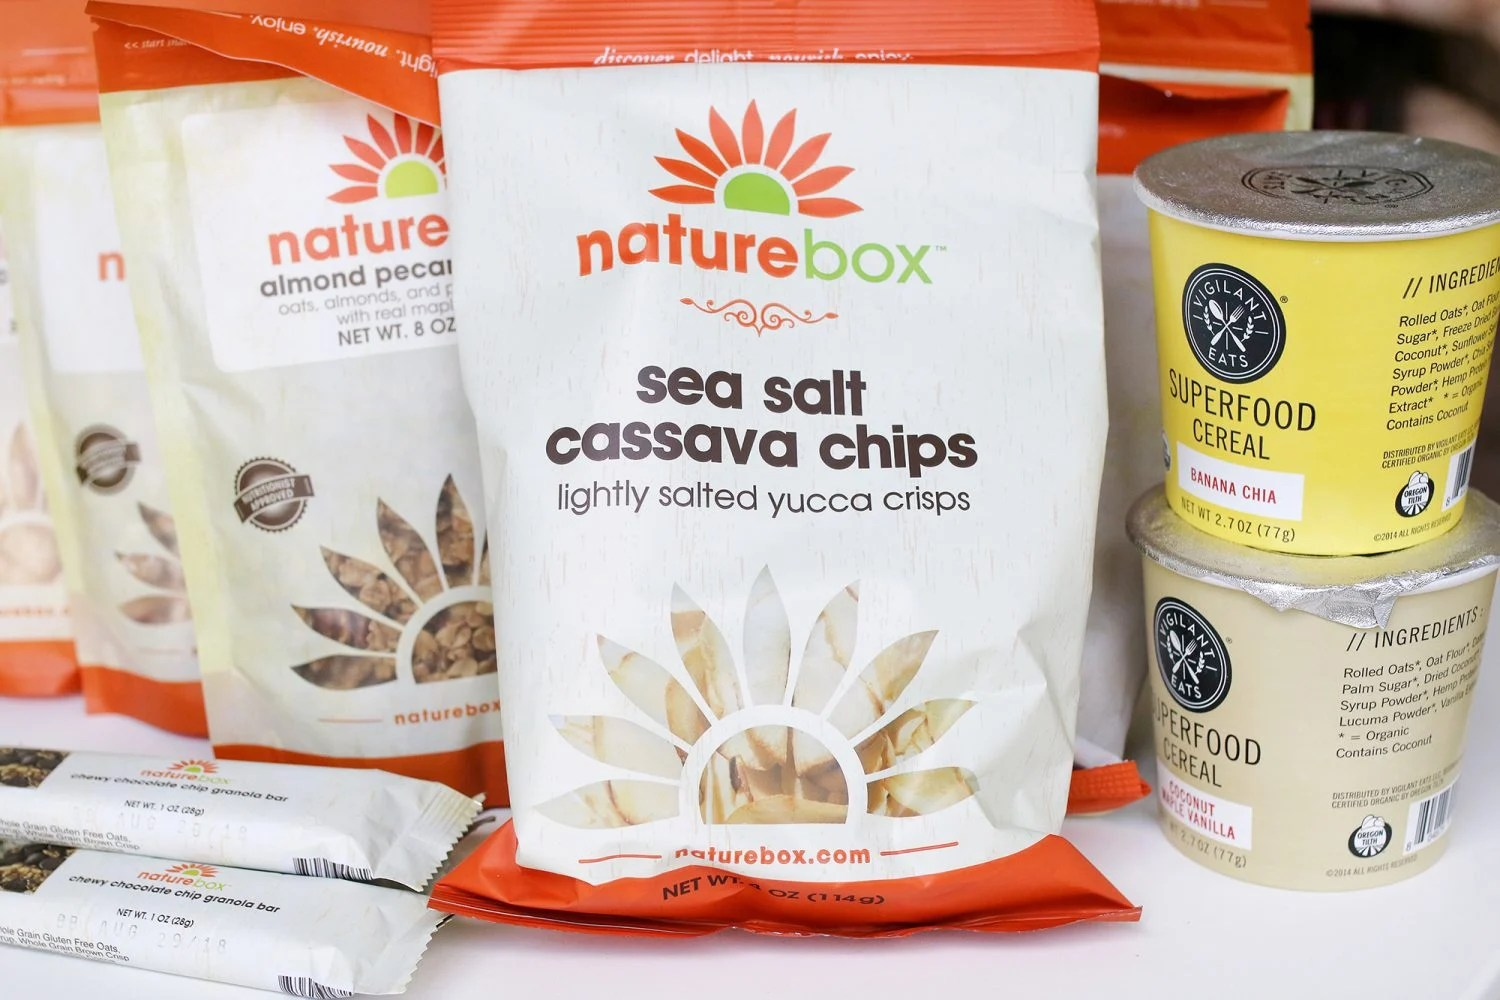 free snacks. naturebox, nature box, healthy snacks, vegan snacks, non-gmo snacks, naturebox, naturebox.com, cacao nibs, healthy kids snacks, 2018, mom blogger, blog, healthy lifestyle, healthy blogger